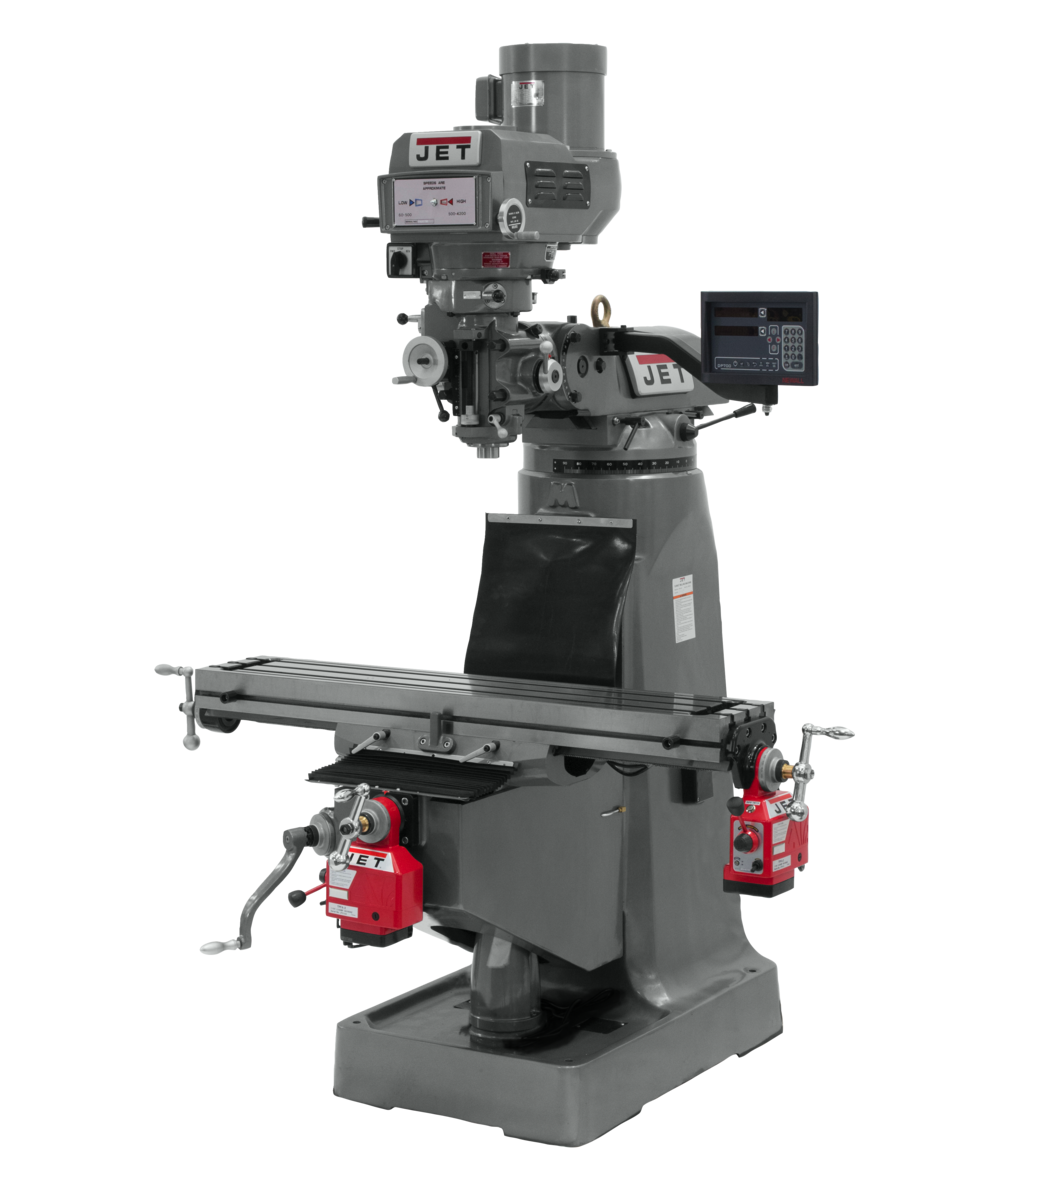 """JTM-4VS-1 Mill With Newall DP700 DRO With X and Y-Axis Powerfeeds and 6"""" Riser Block"""